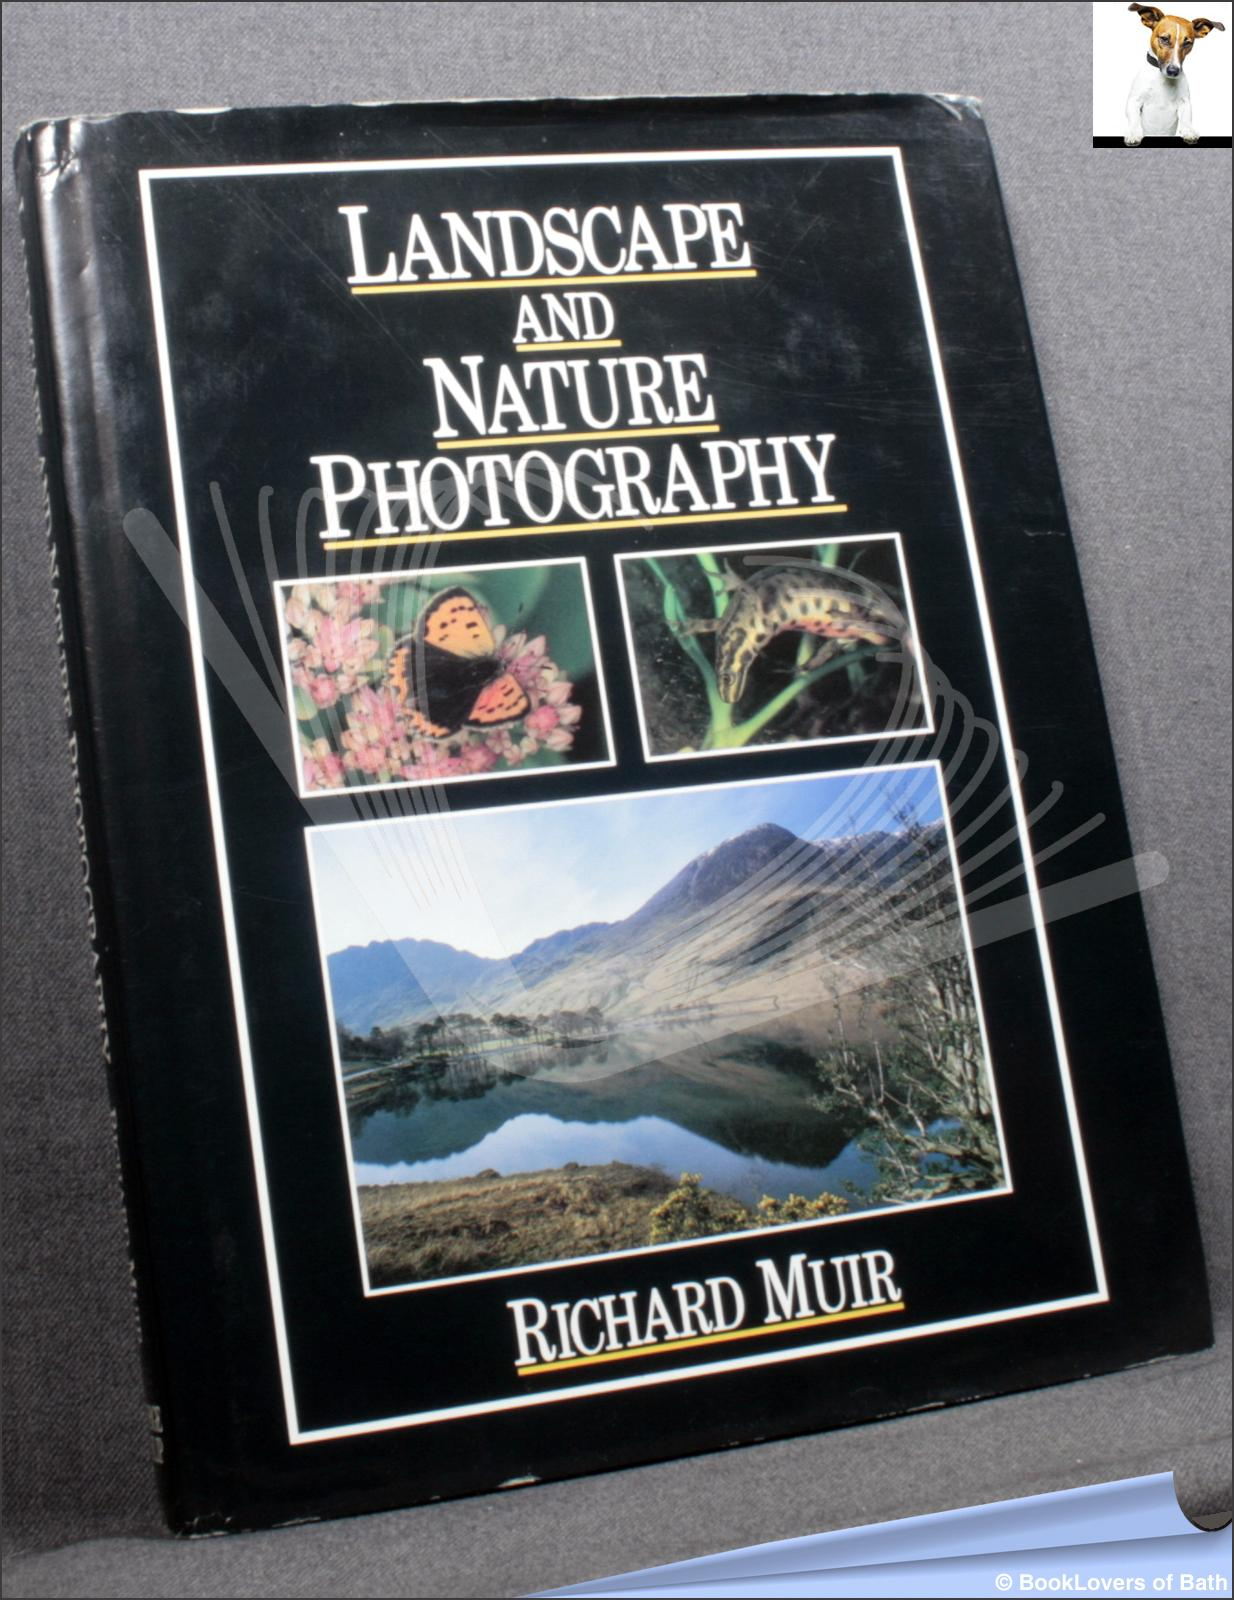 Landscape and Nature Photography - Richard Muir